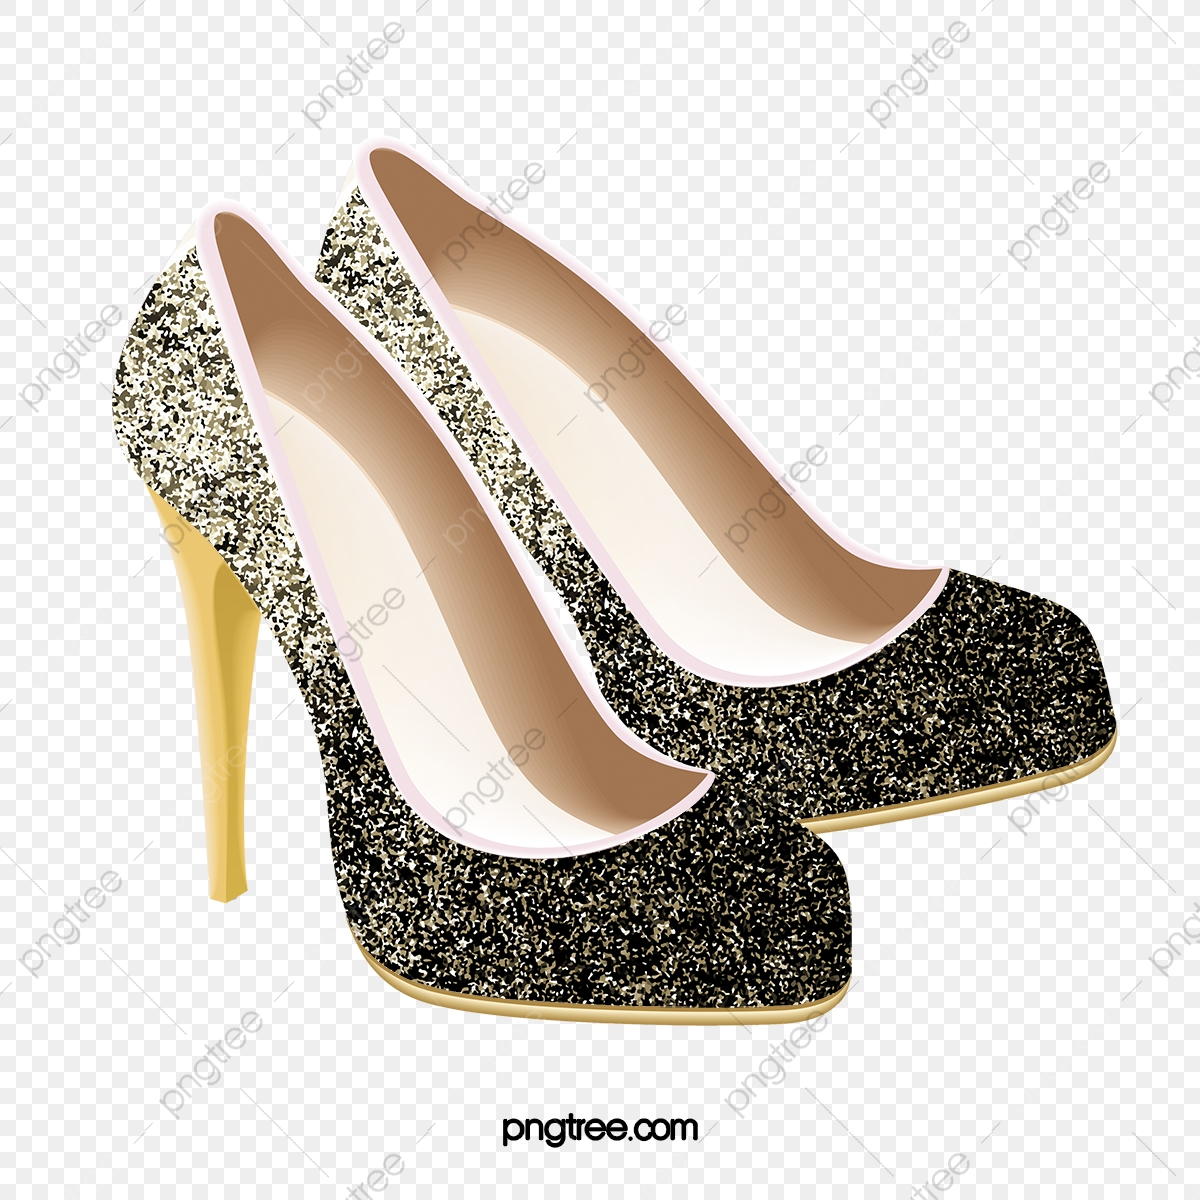 Free high heel shoe clipart. Gradient choo fine with